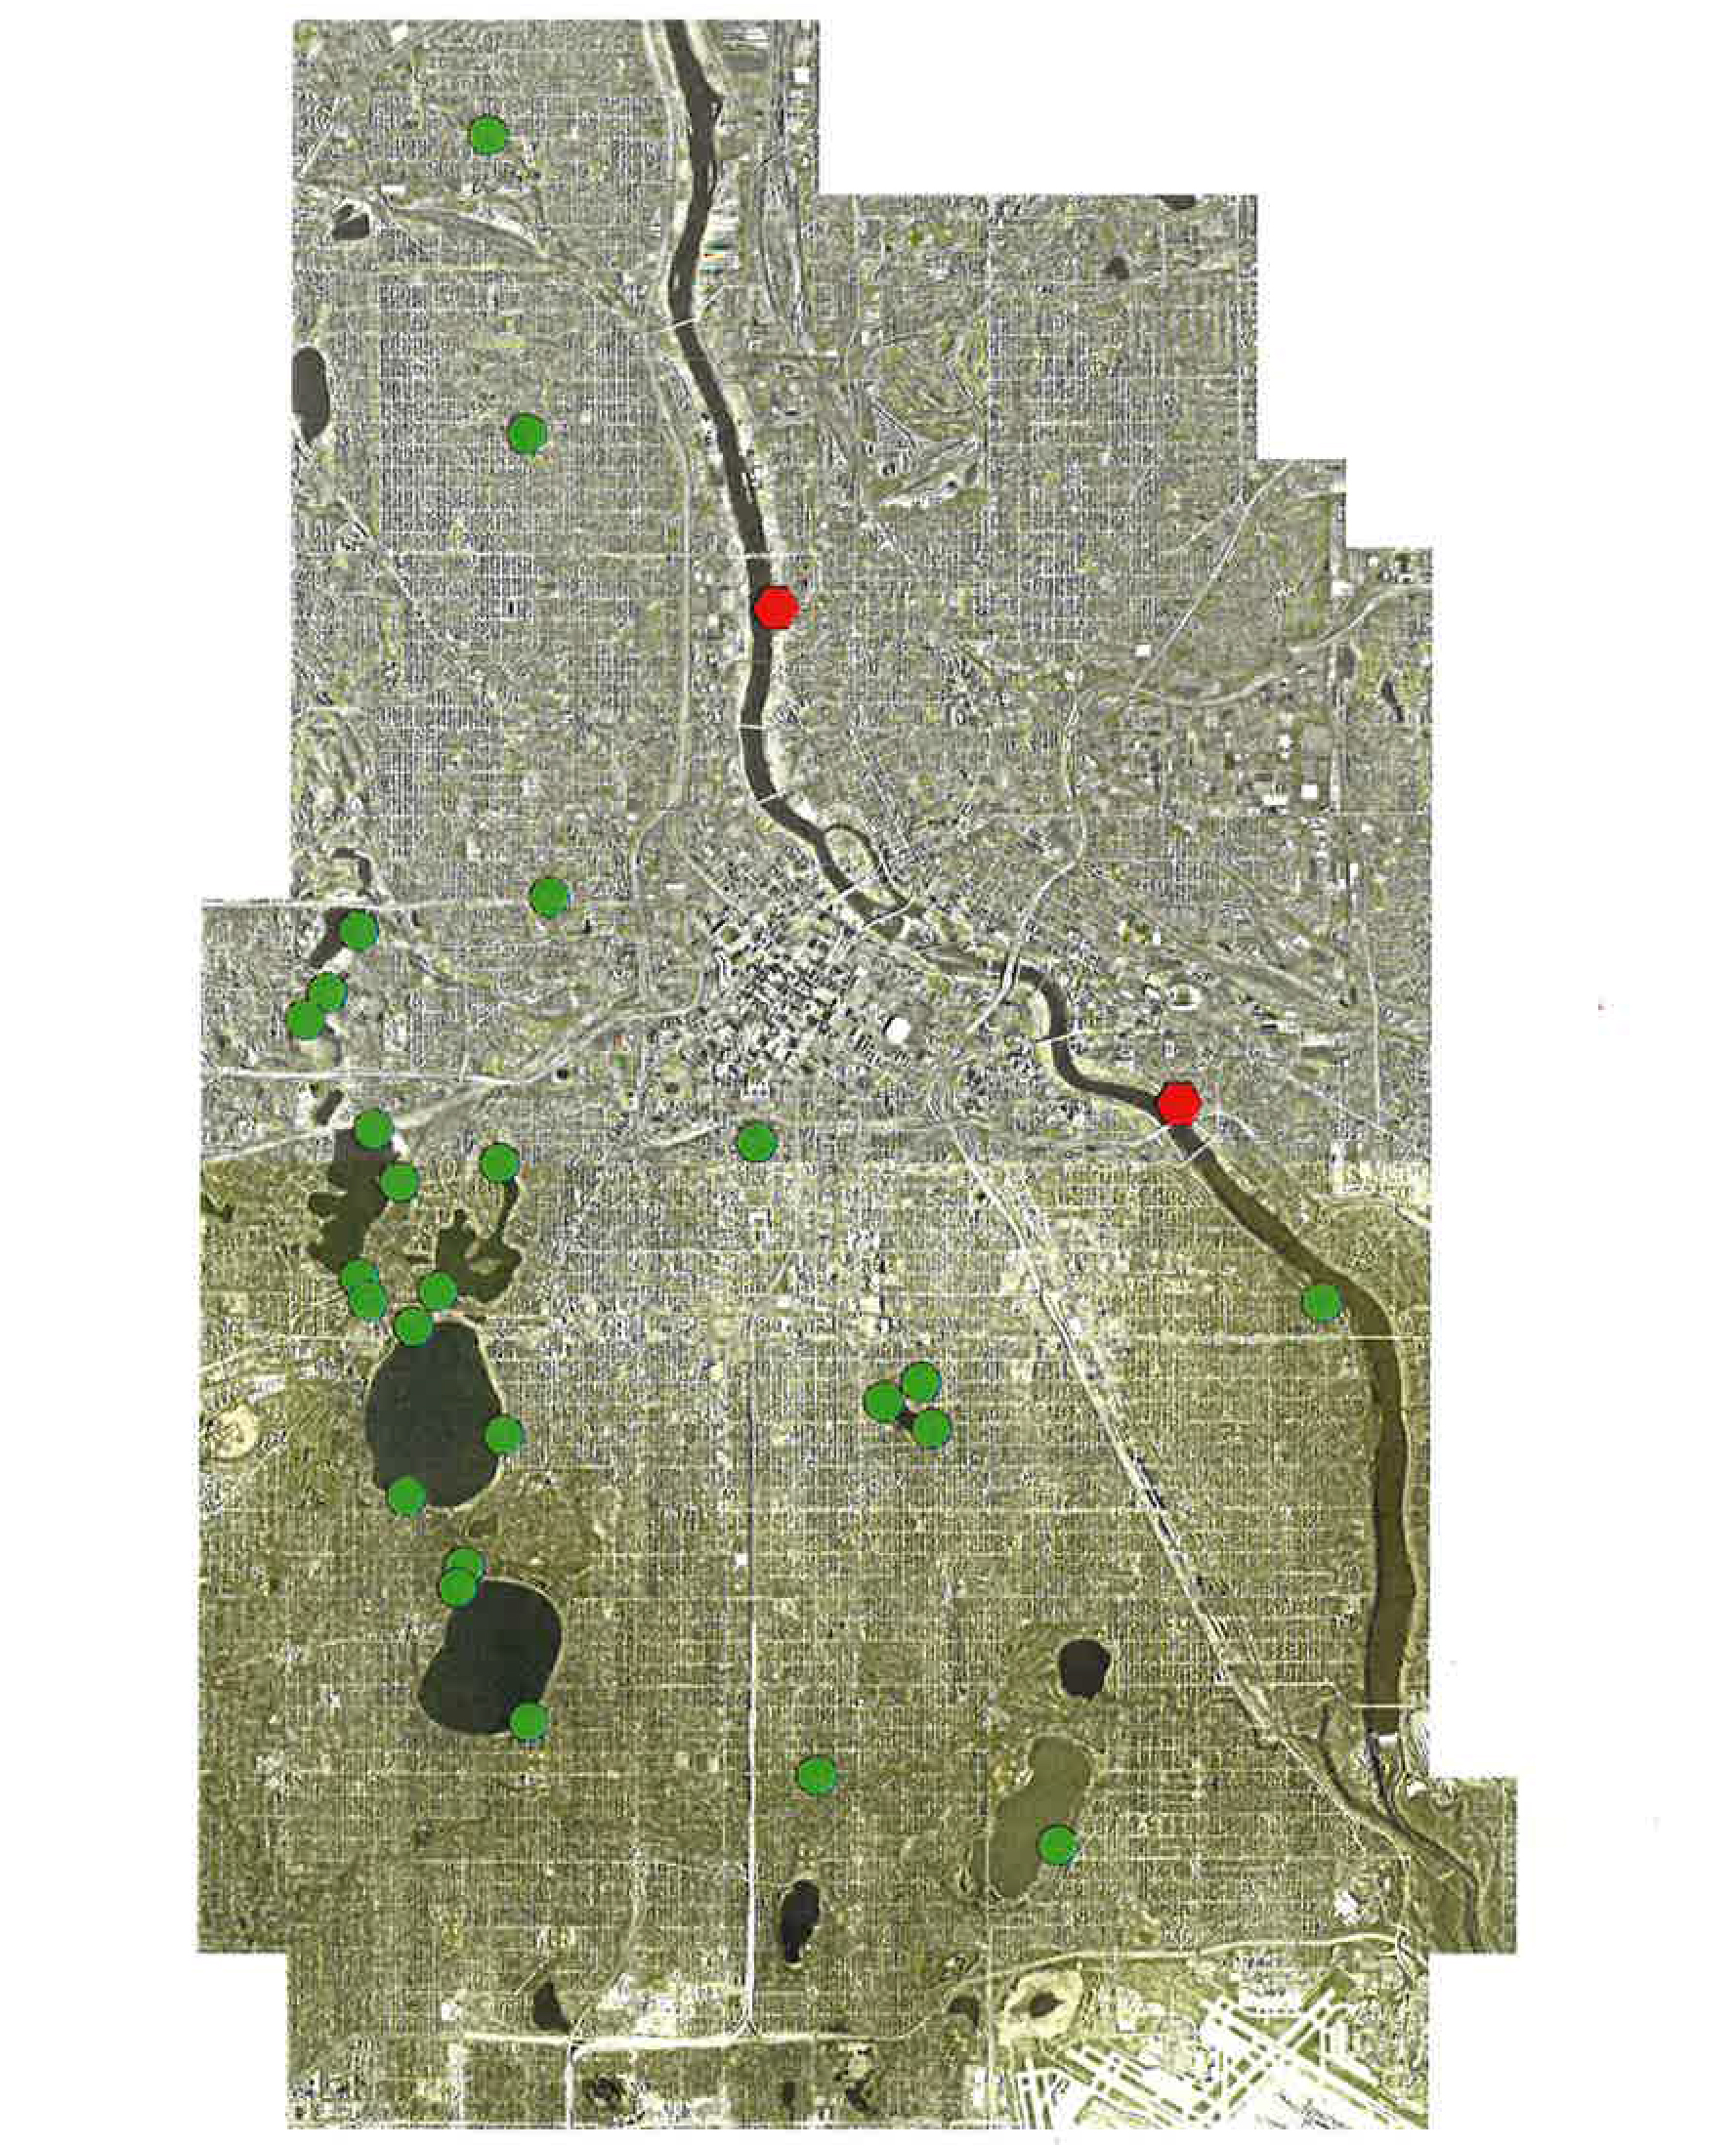 Minneapolis hand-pump drinking wells. Green dots are wells that are still open, red dots are wells that have been sealed // Image courtesy of the Minneapolis Parks and Recreation Board